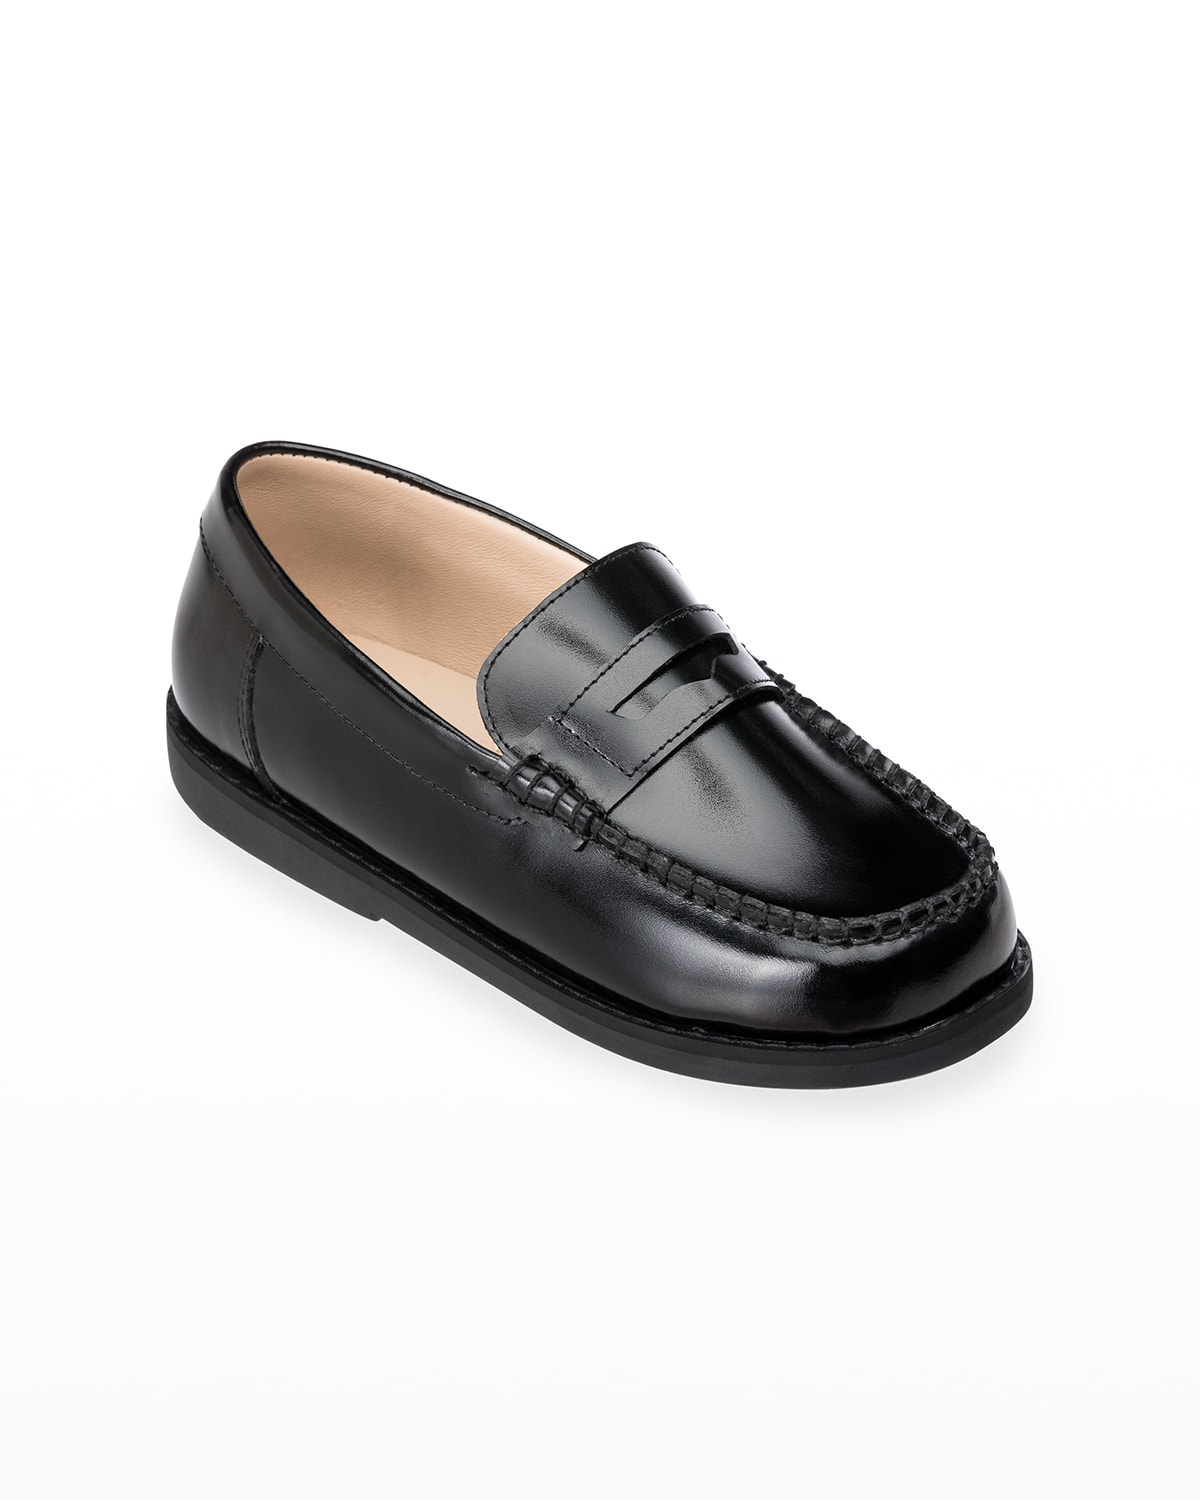 Girl's Scholar Smooth Leather Penny Loafers